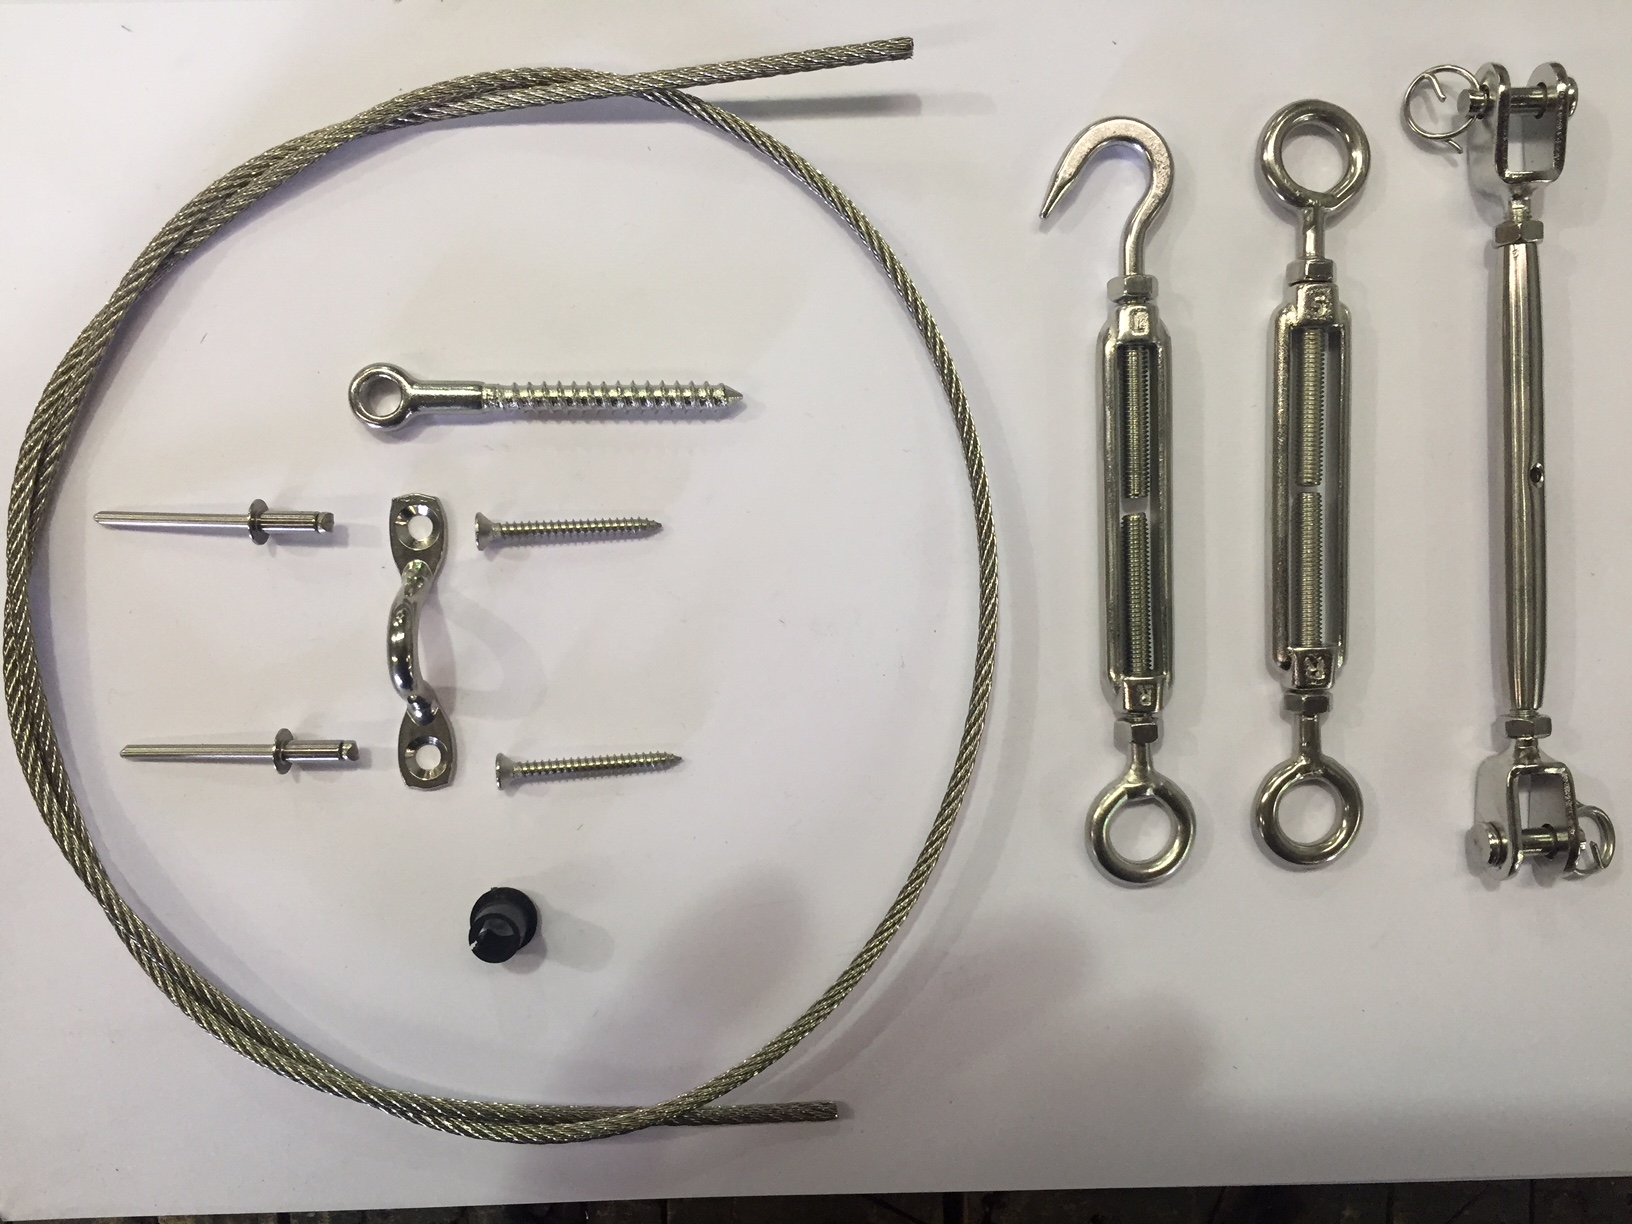 Hand Swaged DIY Balustrading Kits for Stainless Wire - All Things ...